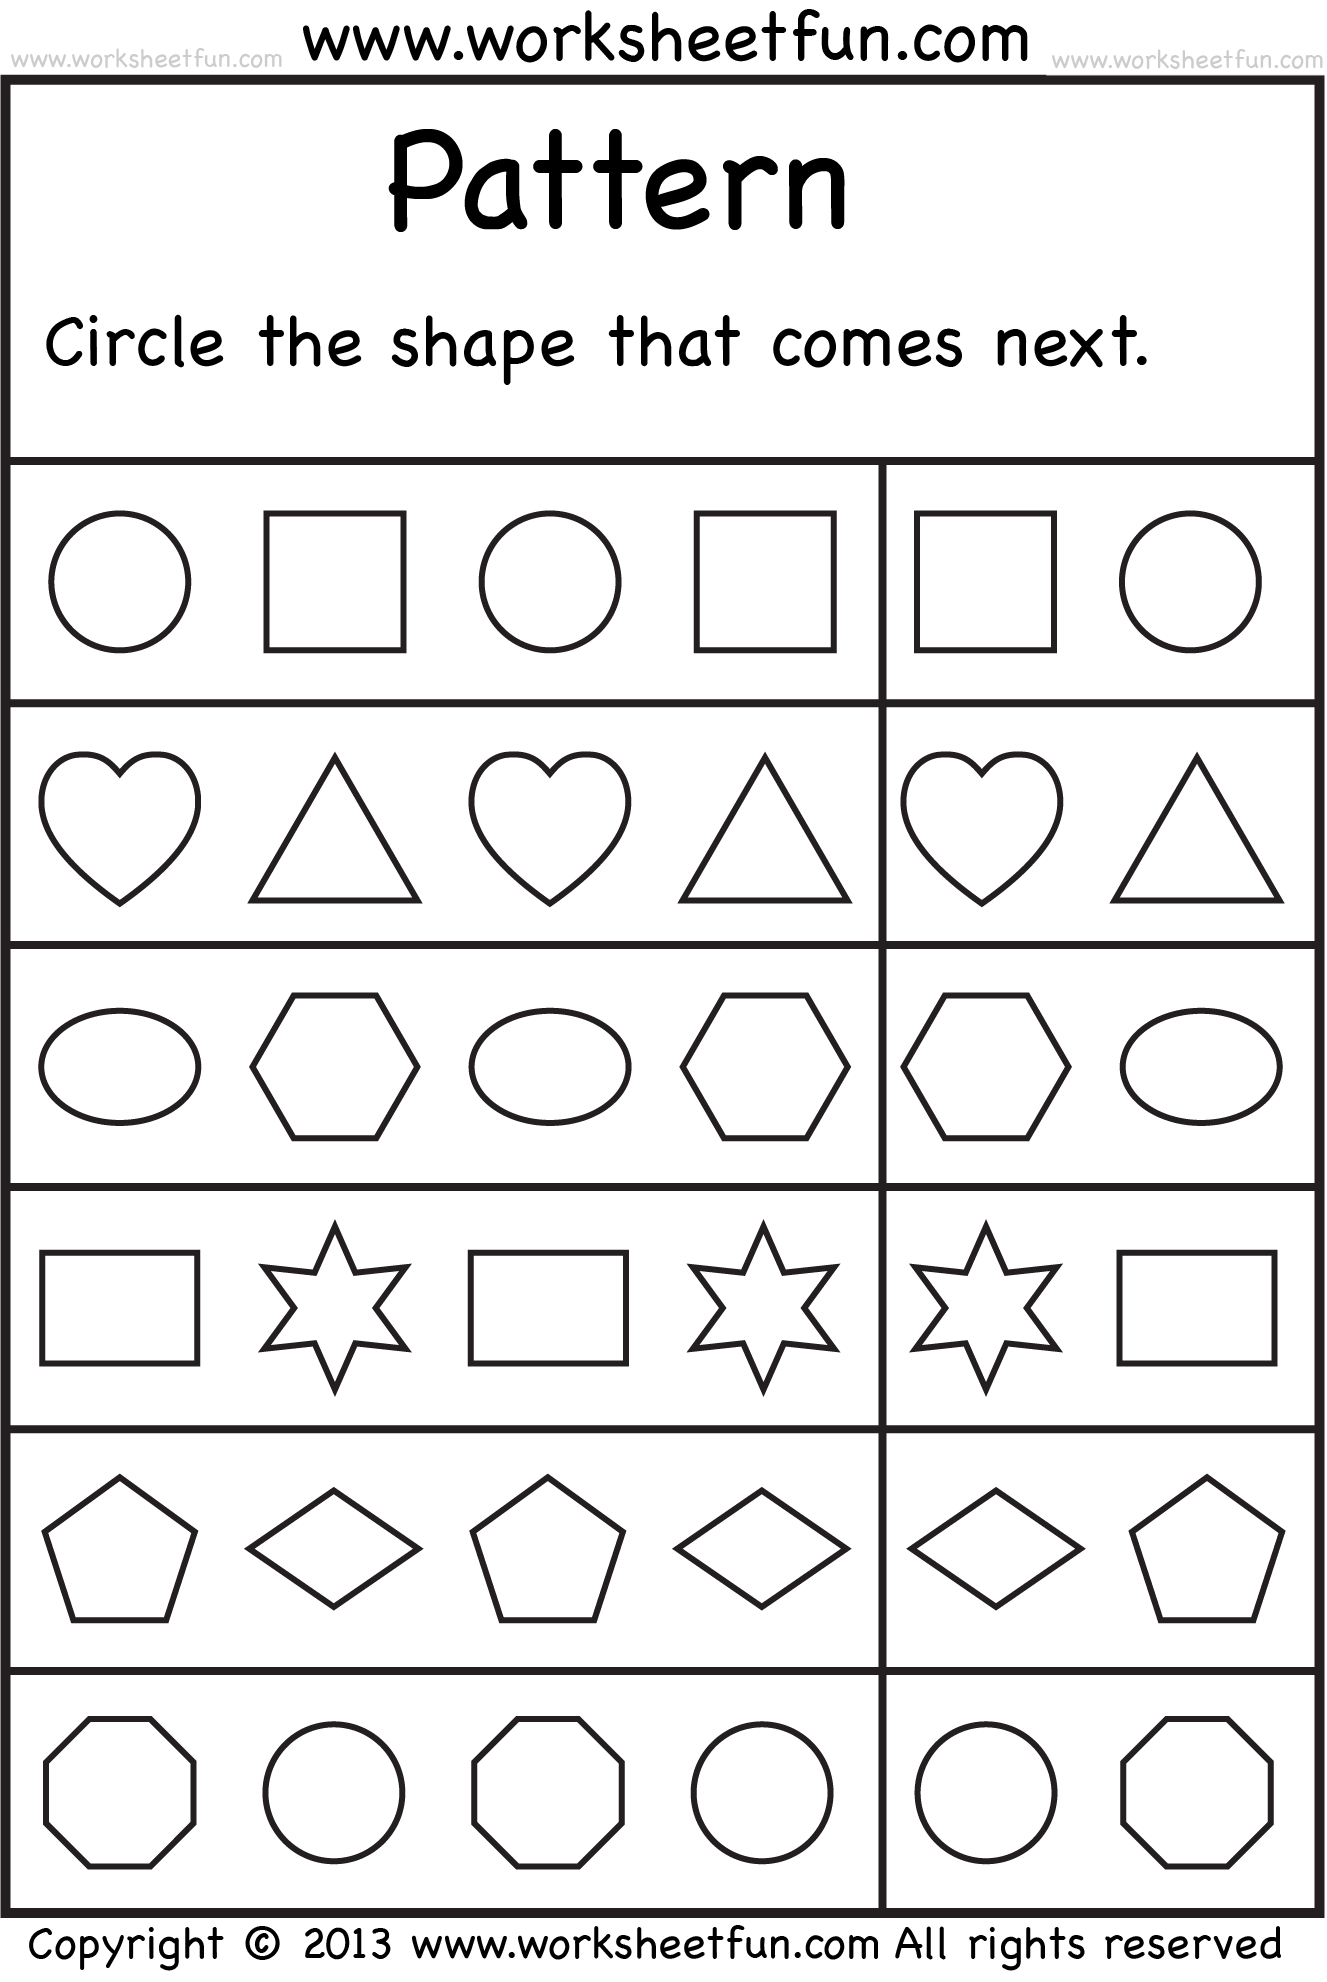 Great Patterns U2013 Circle The Shape That Comes Next U2013 2 Worksheets / FREE Printable  Worksheets